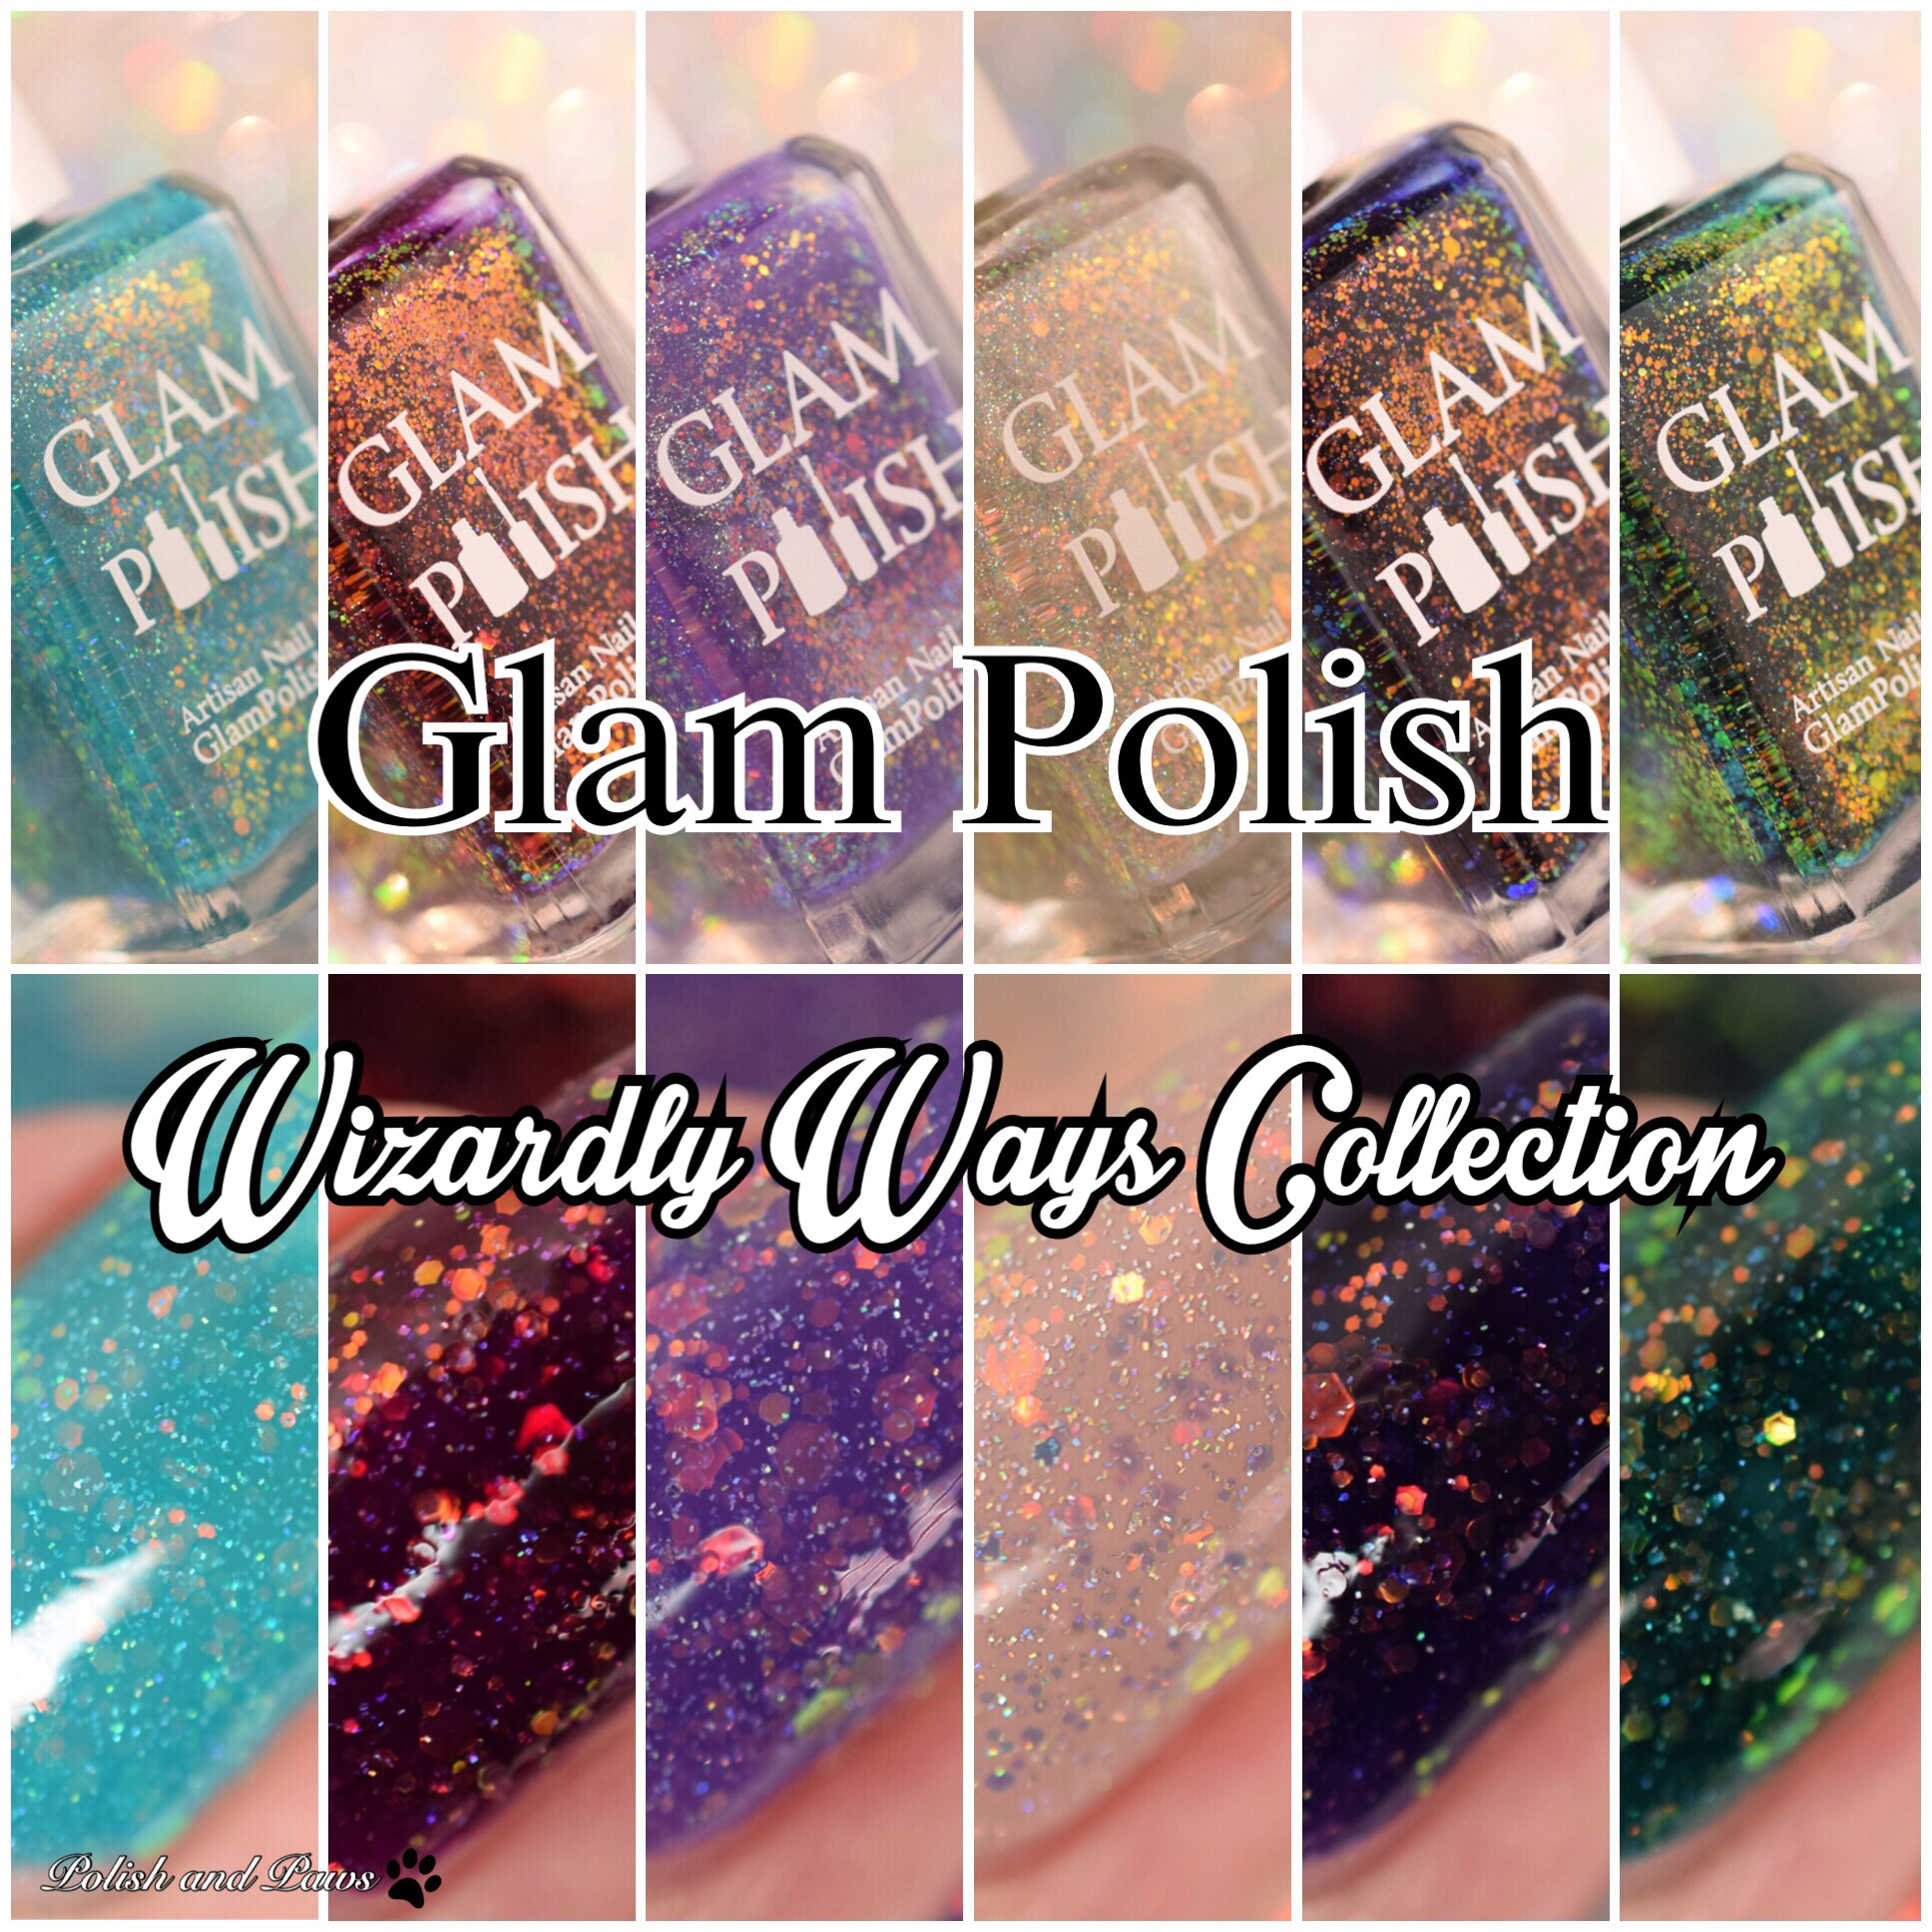 Glam Polish Wizardly Ways Collection